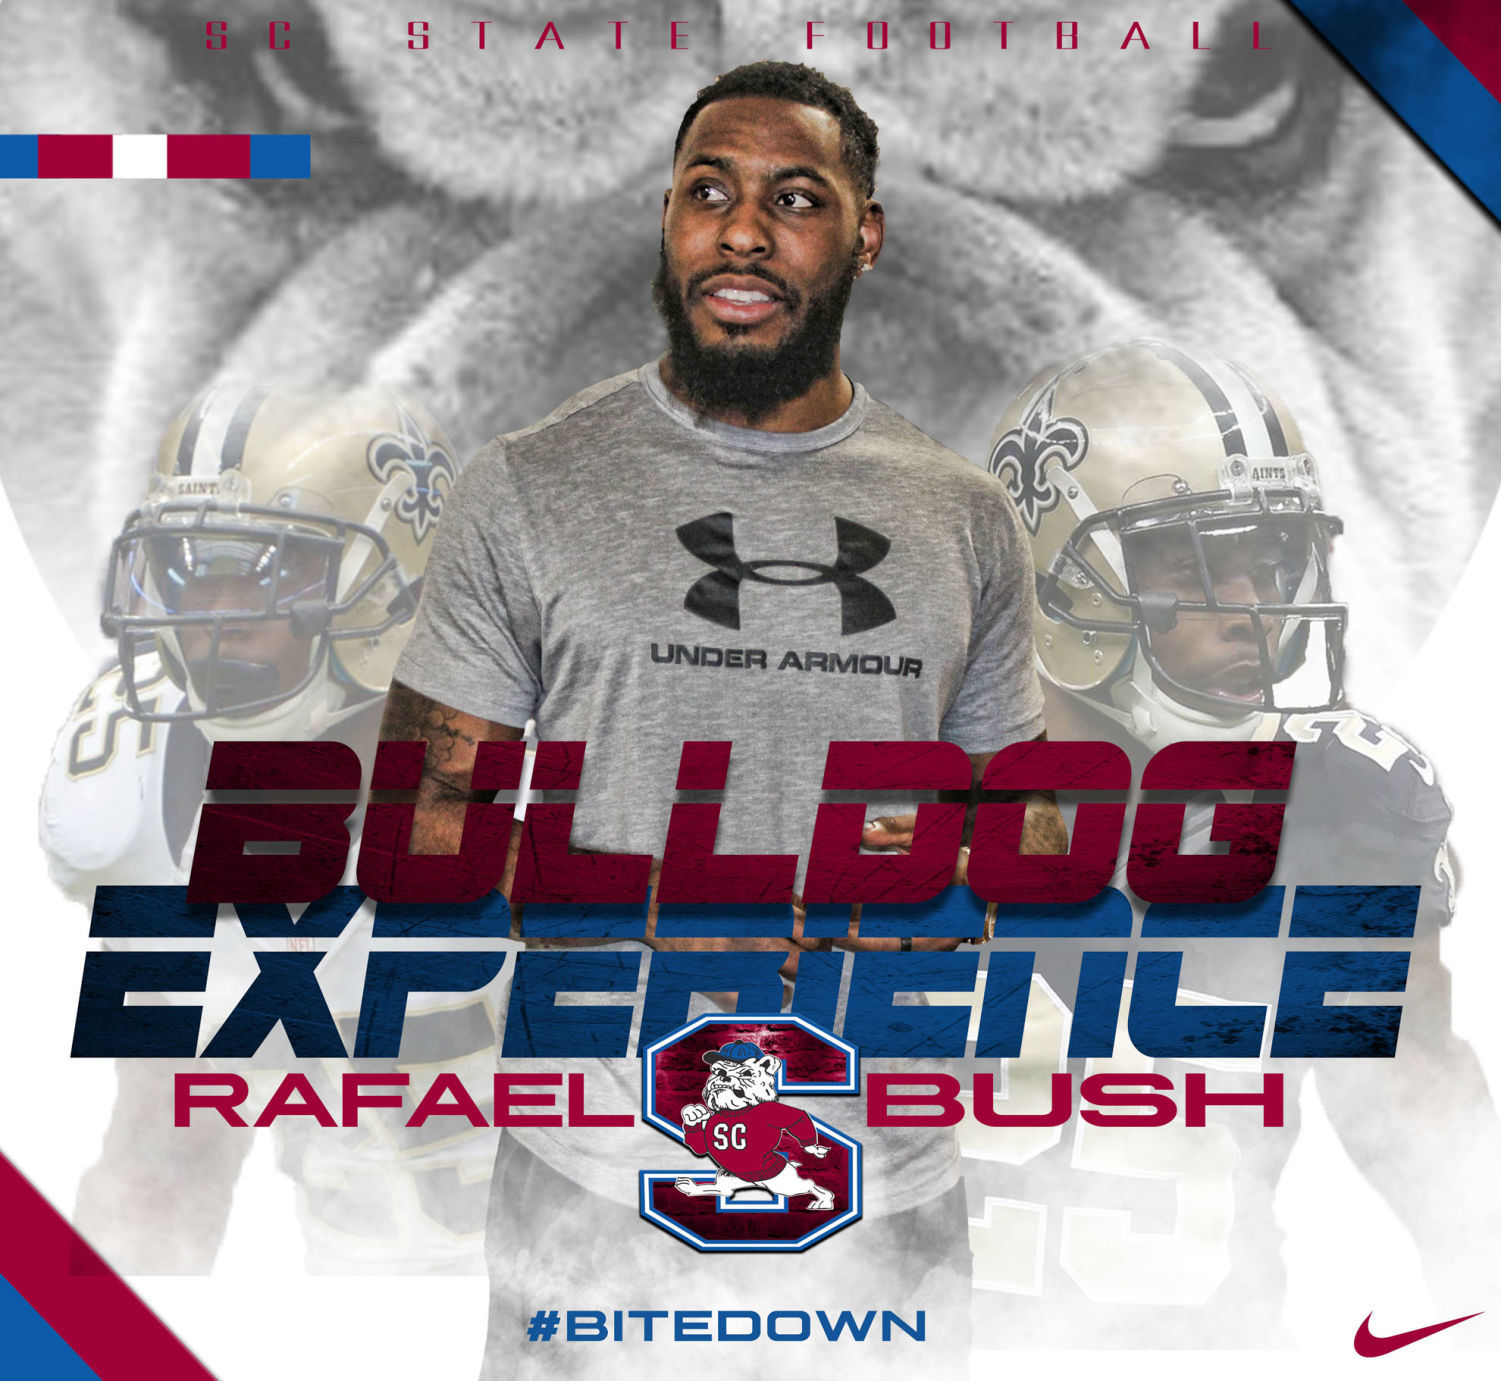 S.C. STATE FOOTBALL: Rafael Bush challenges Bulldogs to become ...